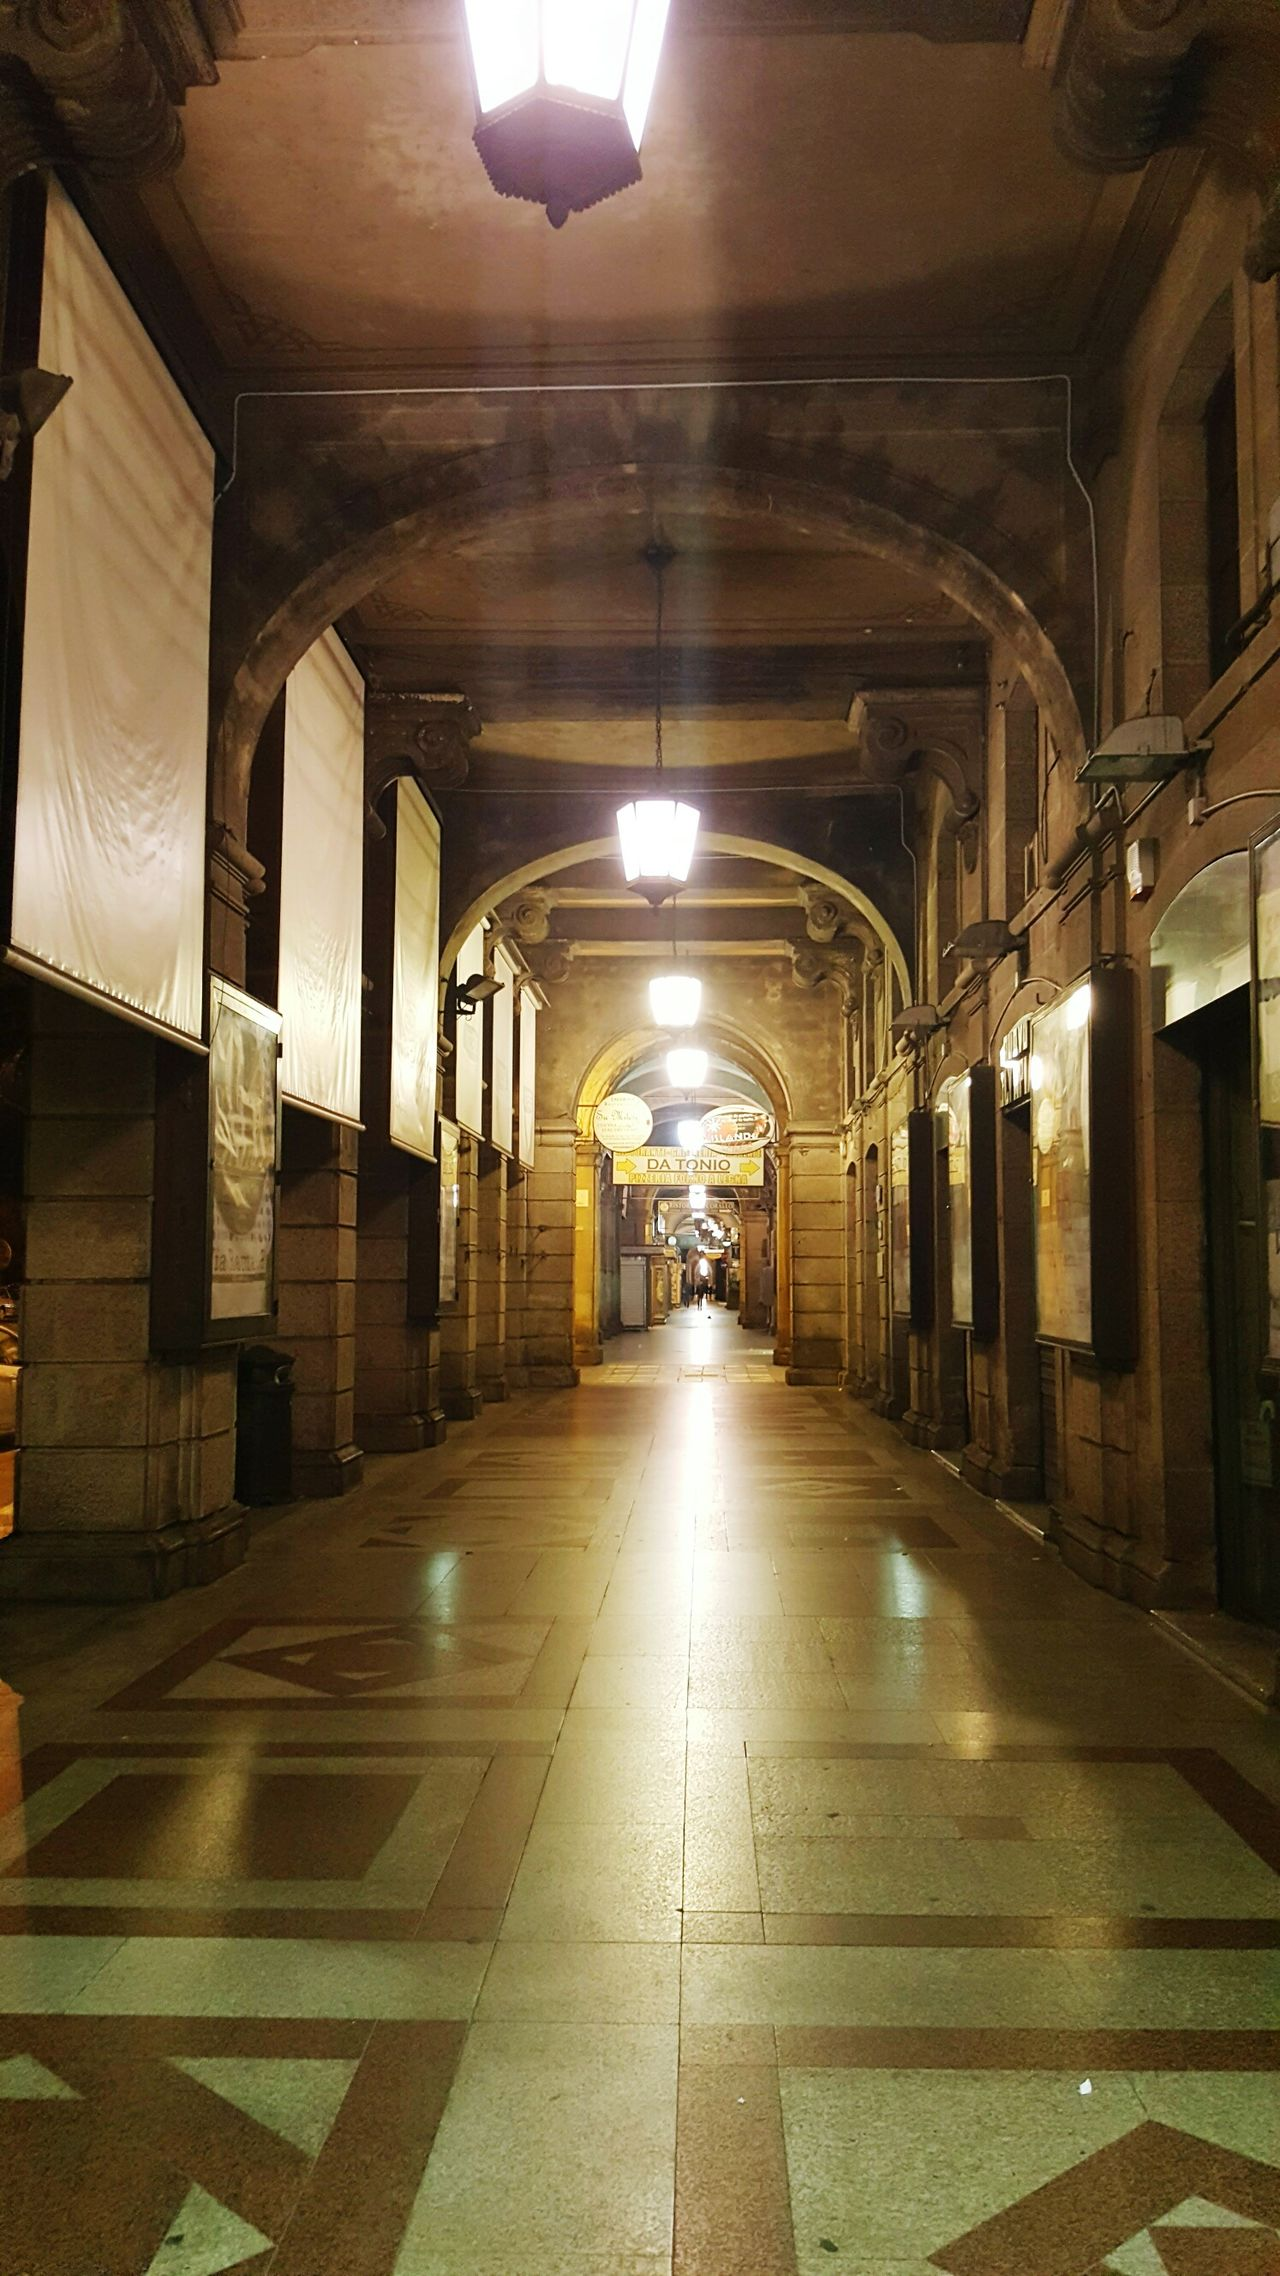 Architecture Built Structure Illuminated Arch No People Day Indoors  The Way Forward Relaxing Night Instgram Friends ❤ Sardegna😍😍👍👌 Facebook Page Reflection City Nightphotography Cagliari Capitale Europea Della Cultura Saturdaynight Old Town Travel Destinations City Life Street Light Travel Tourism